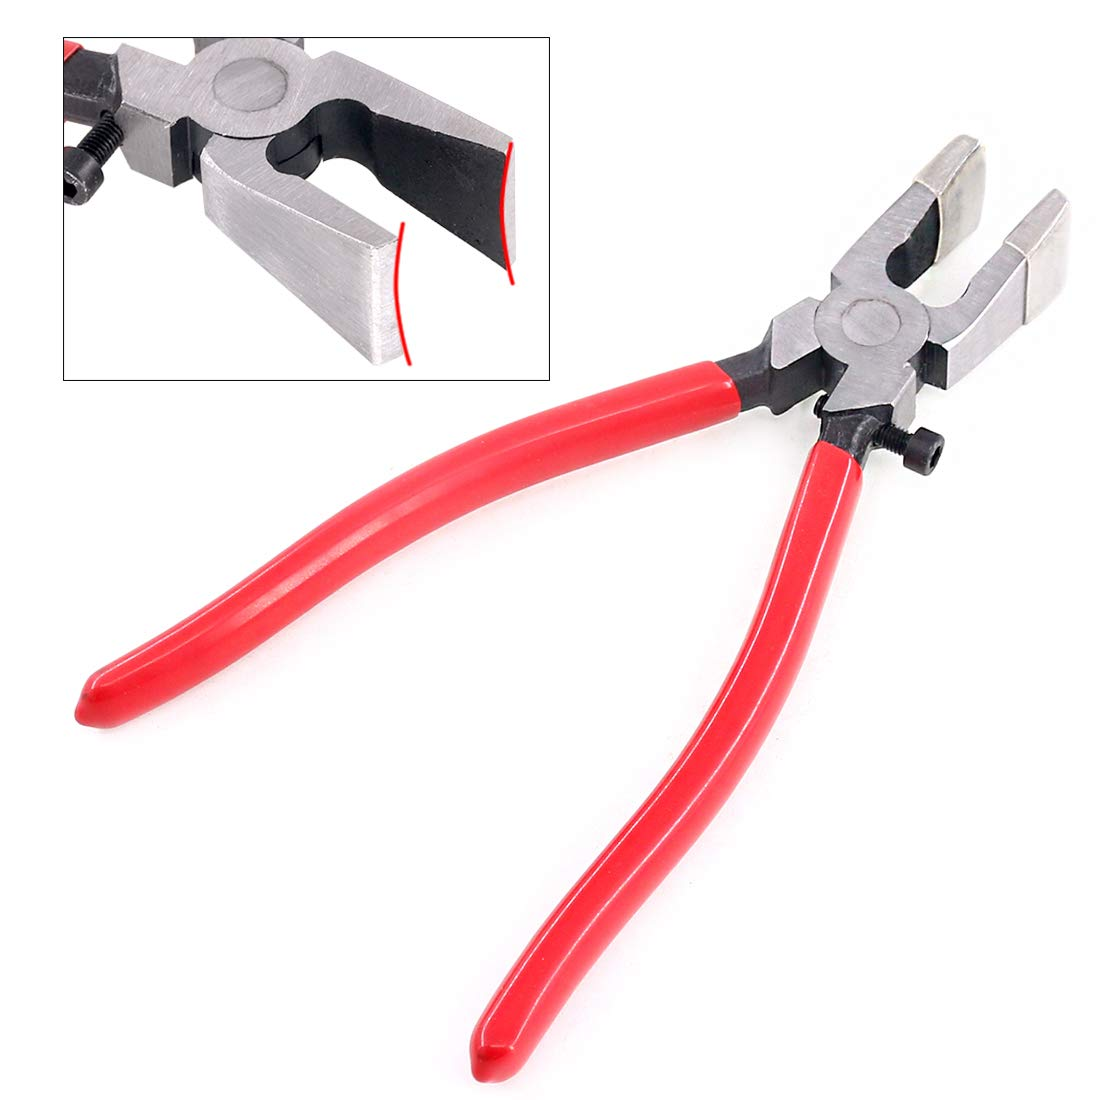 Swpeet Heavy Duty Key Fob Pliers Tool, Metal Glass Running Pliers with Curved Jaws, Studio Running Pliers Attach Rubber…